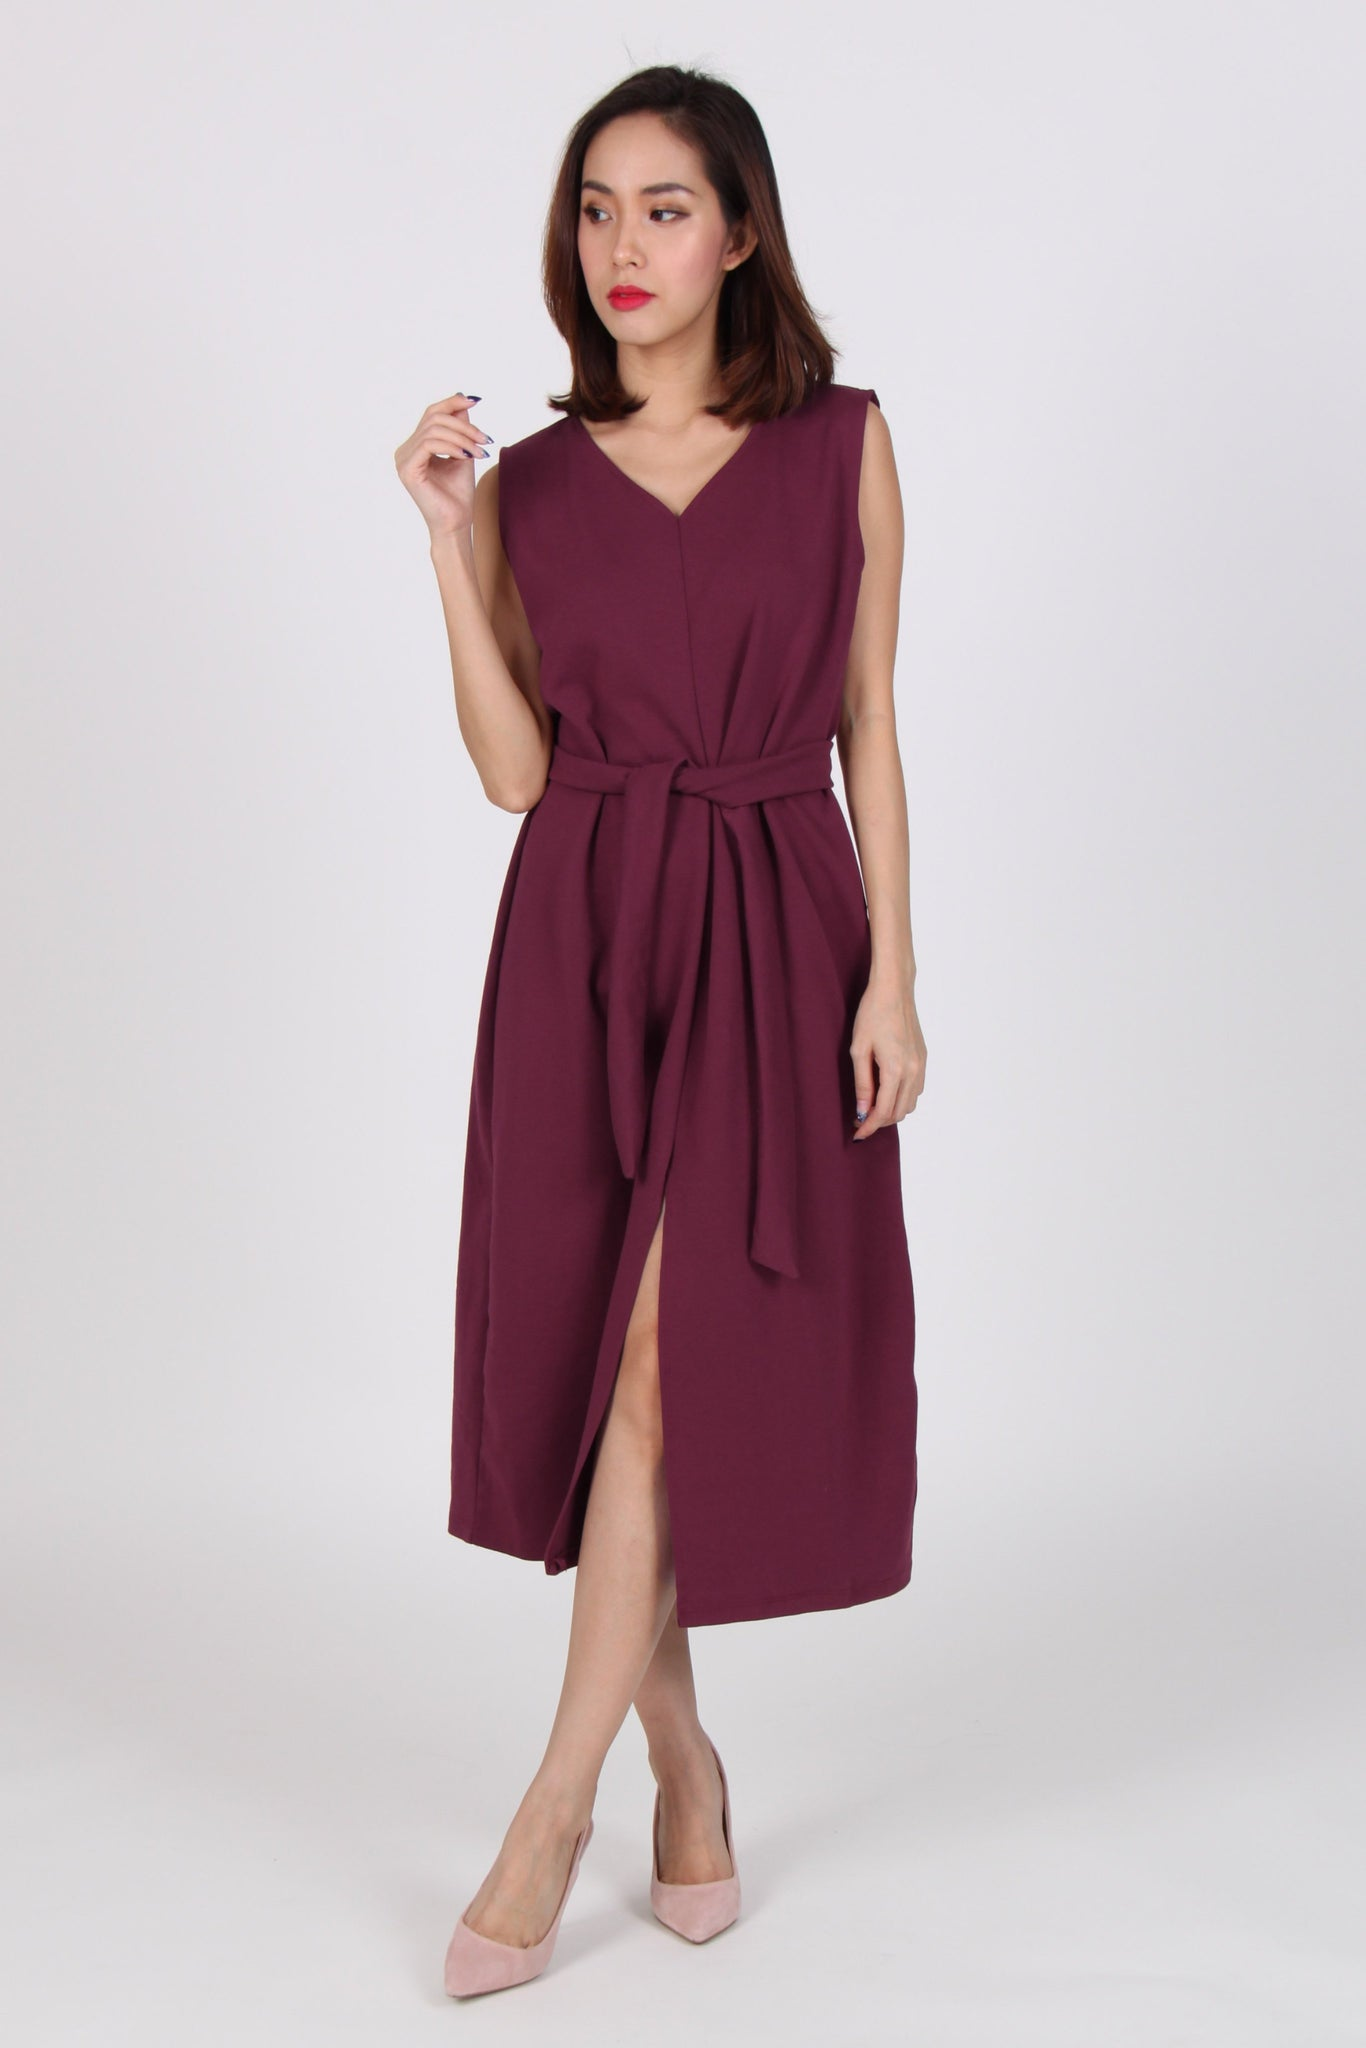 Front Slit V Neck Midi Dress in Maroon